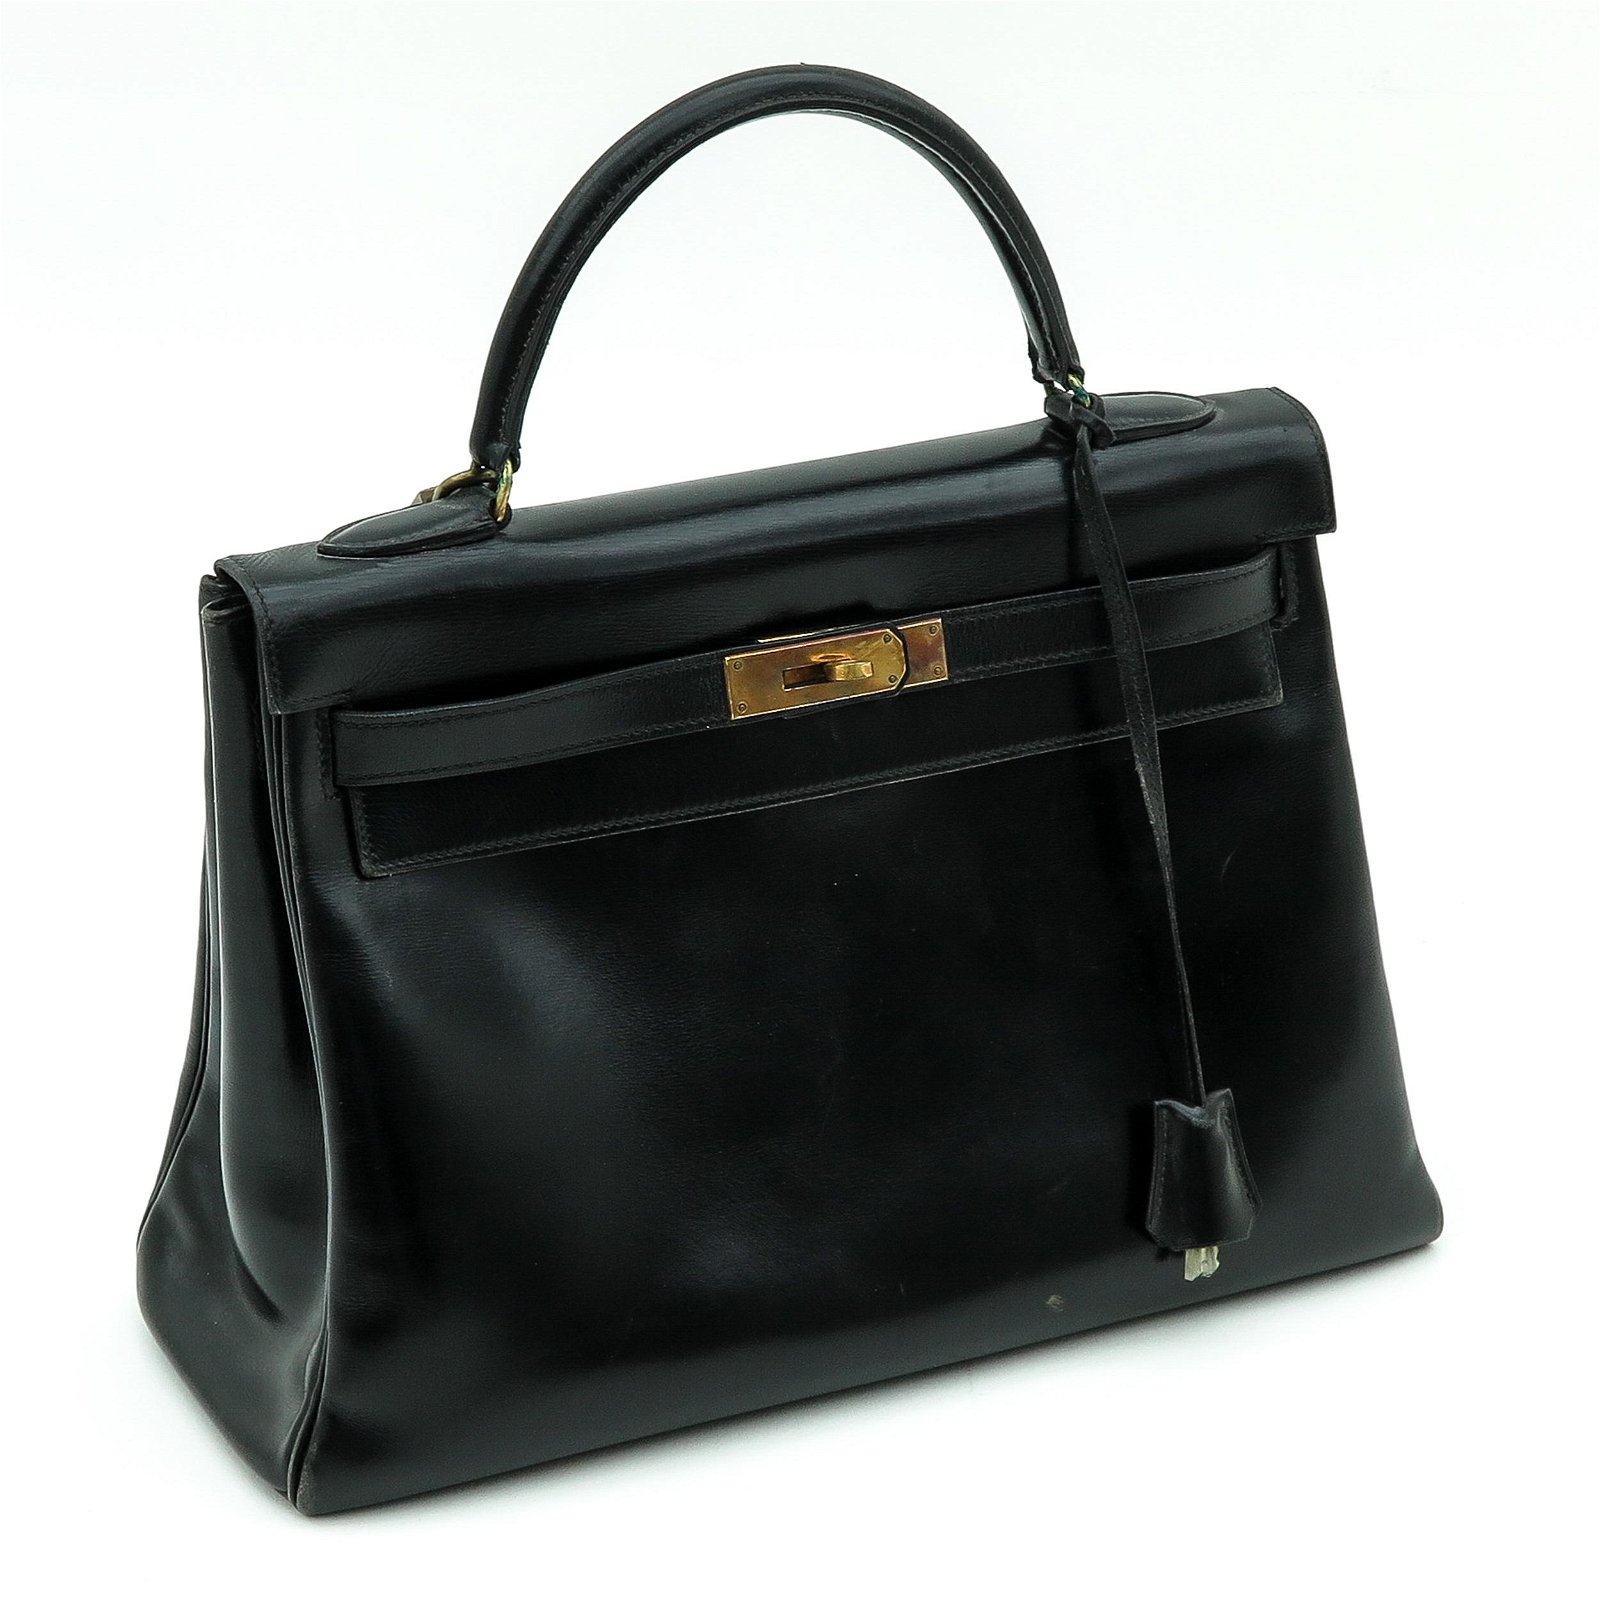 A Ladies Hermes Kelly Bag